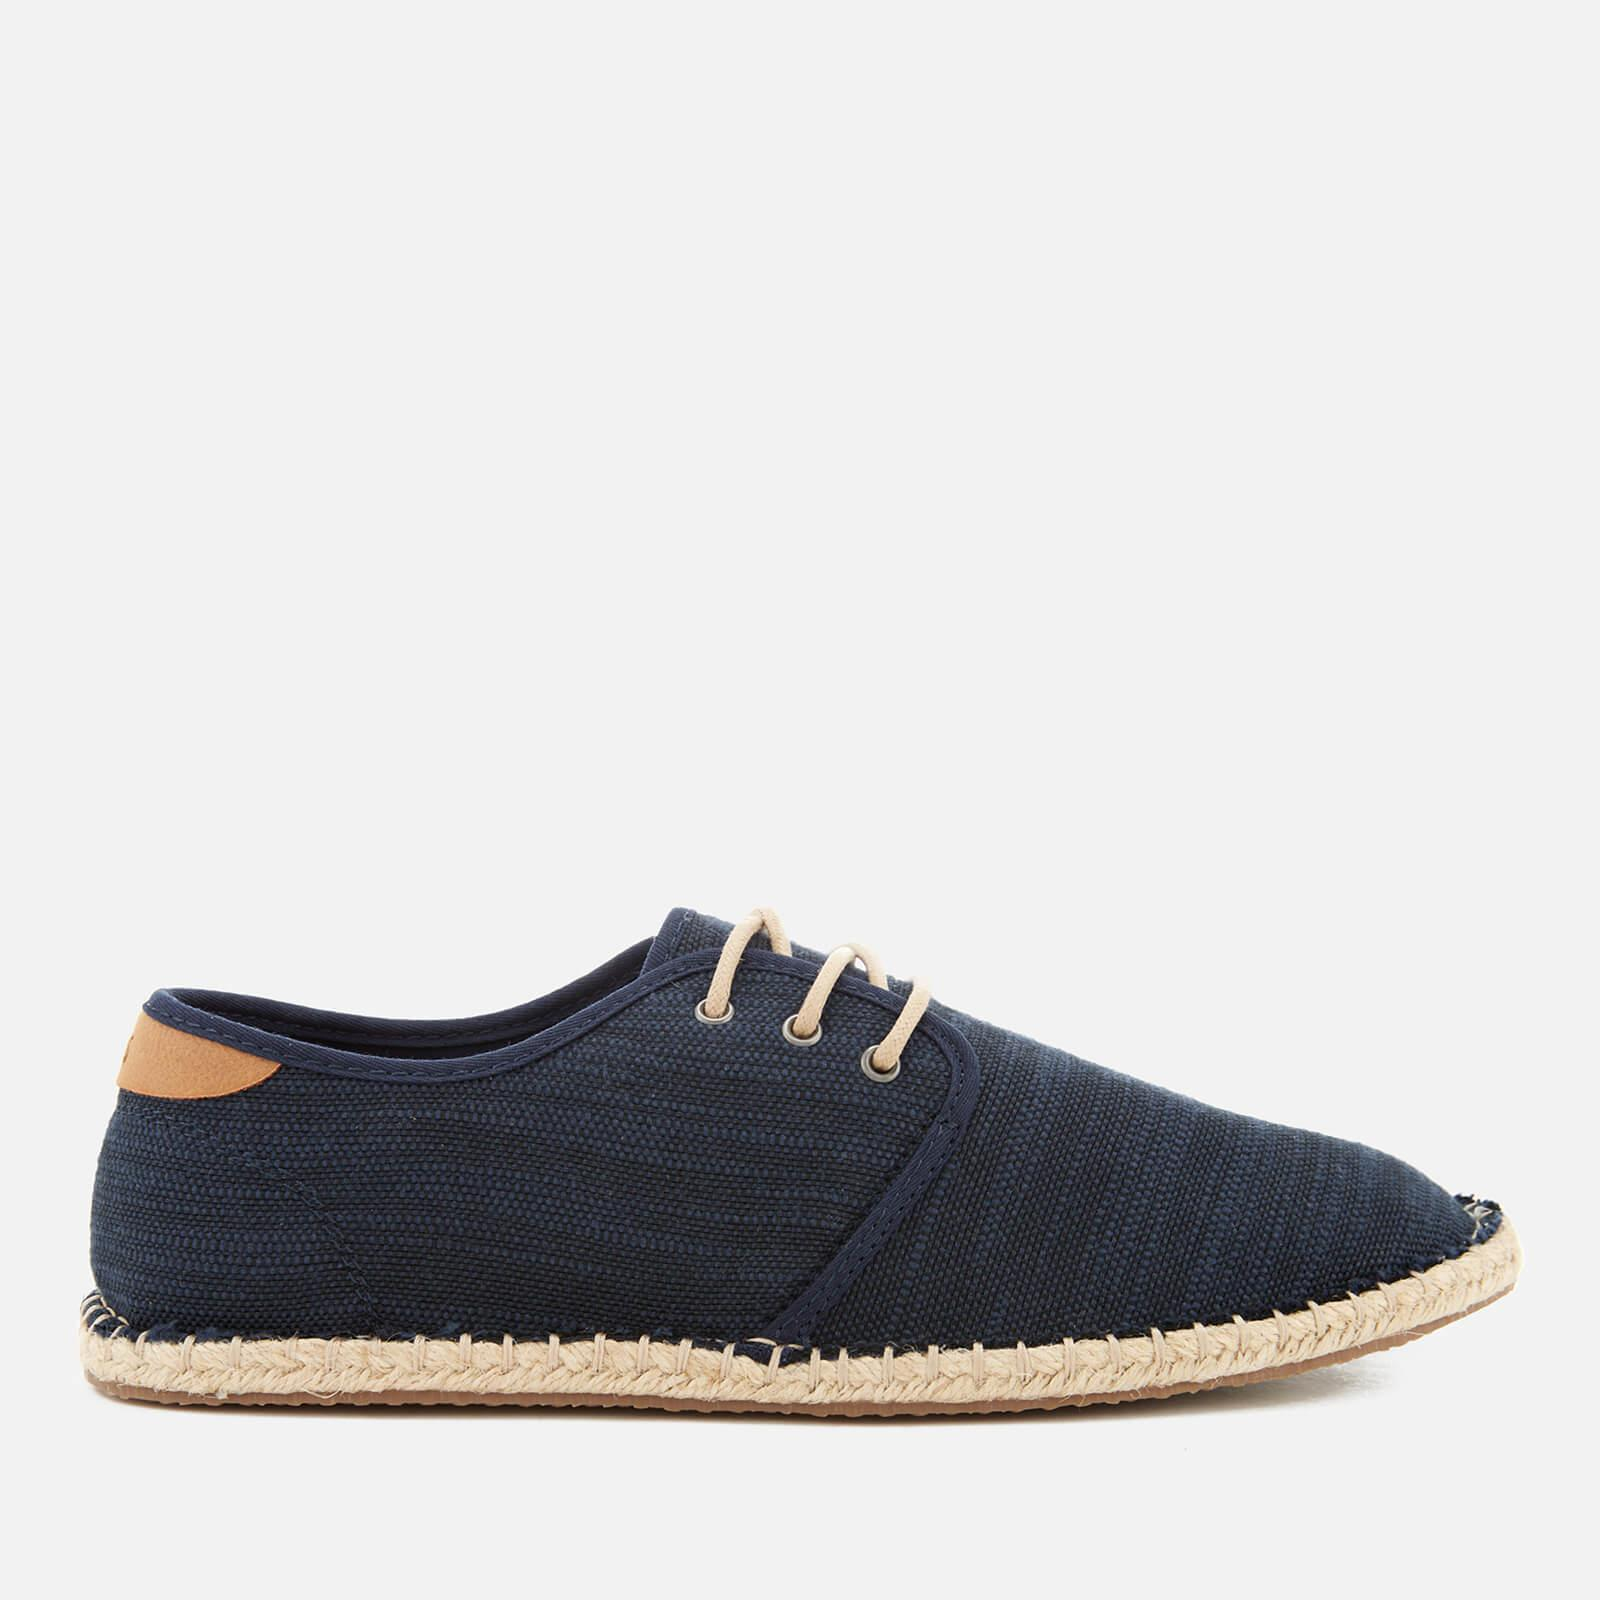 24eff734987 TOMS Diego Canvas Lace Up Espadrilles in Blue for Men - Lyst